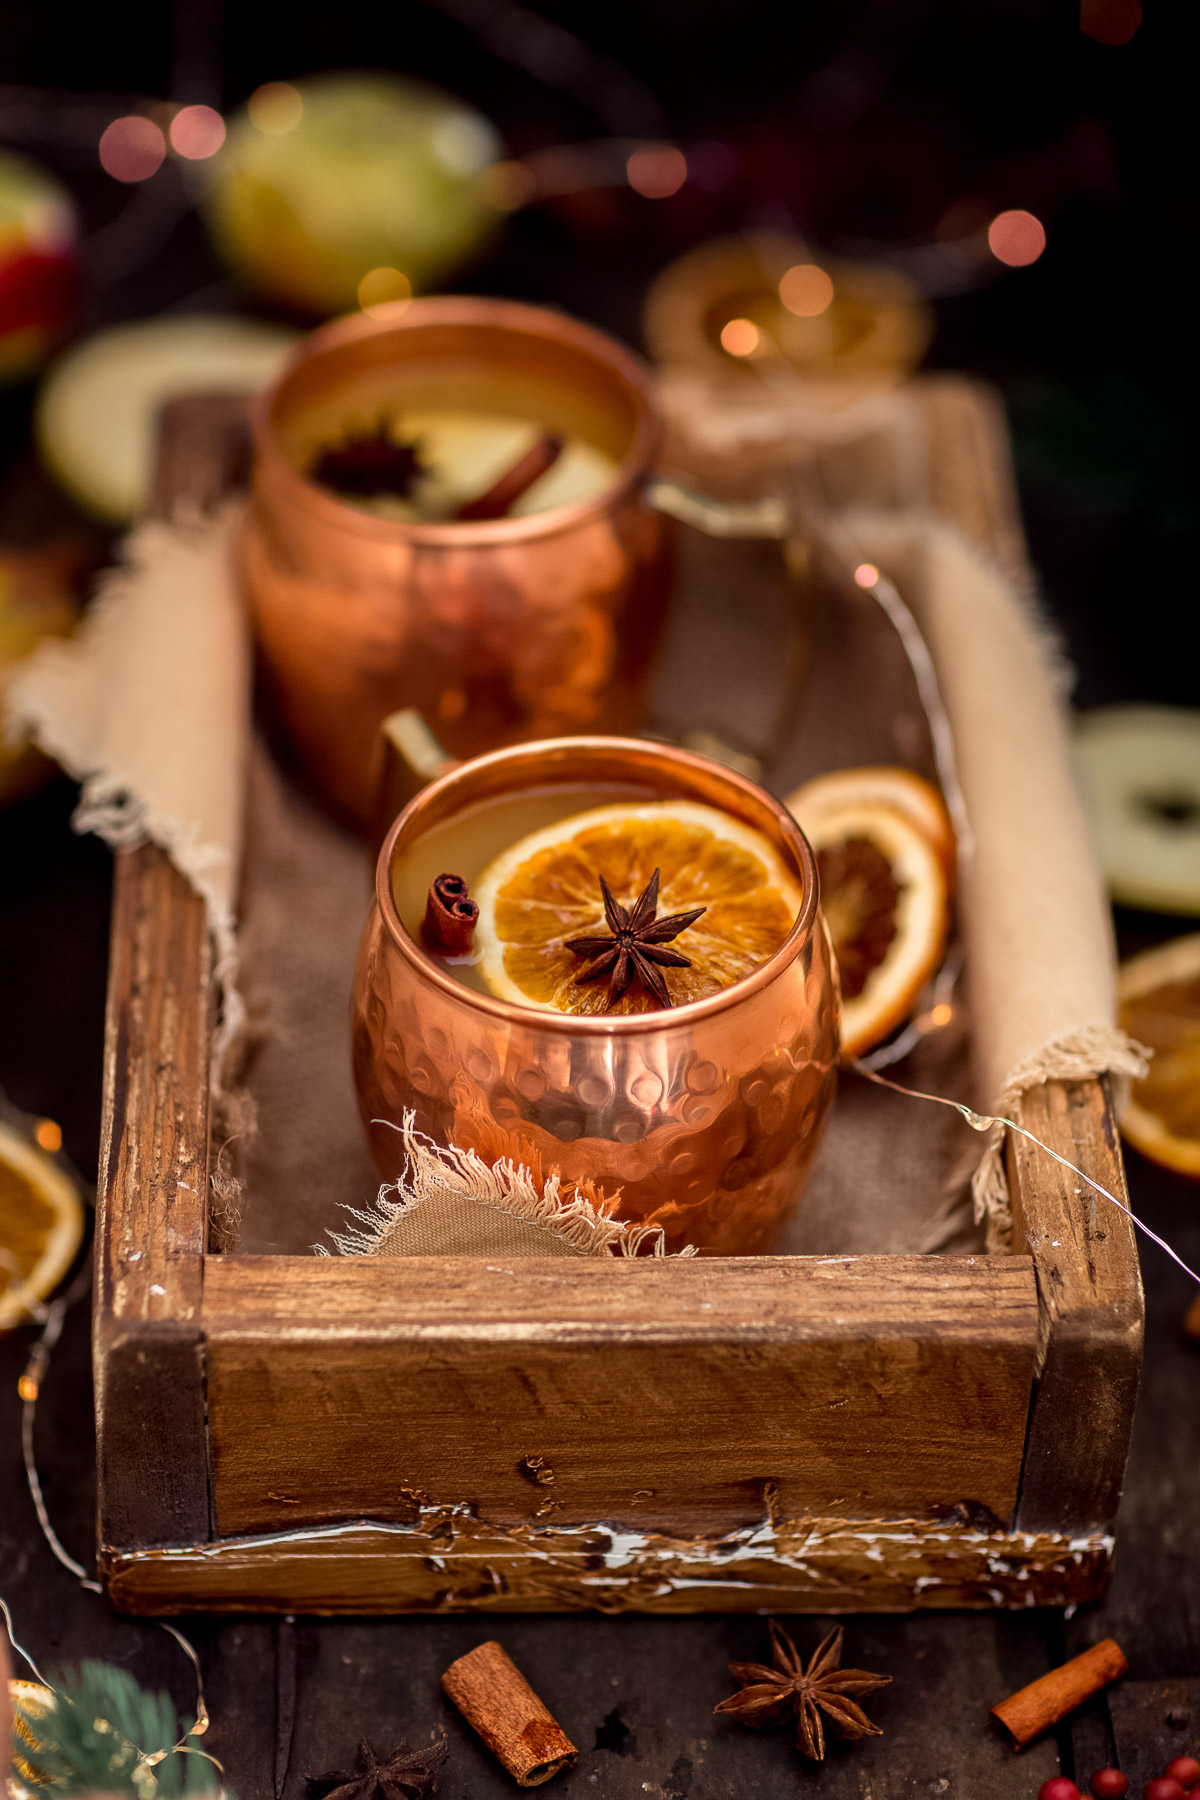 Healthy sugar-free APPLE MULLED WINE recipe #vegan ricetta Brulè di mele fatto in casa senza zucchero Apfelglühwein for Christmas